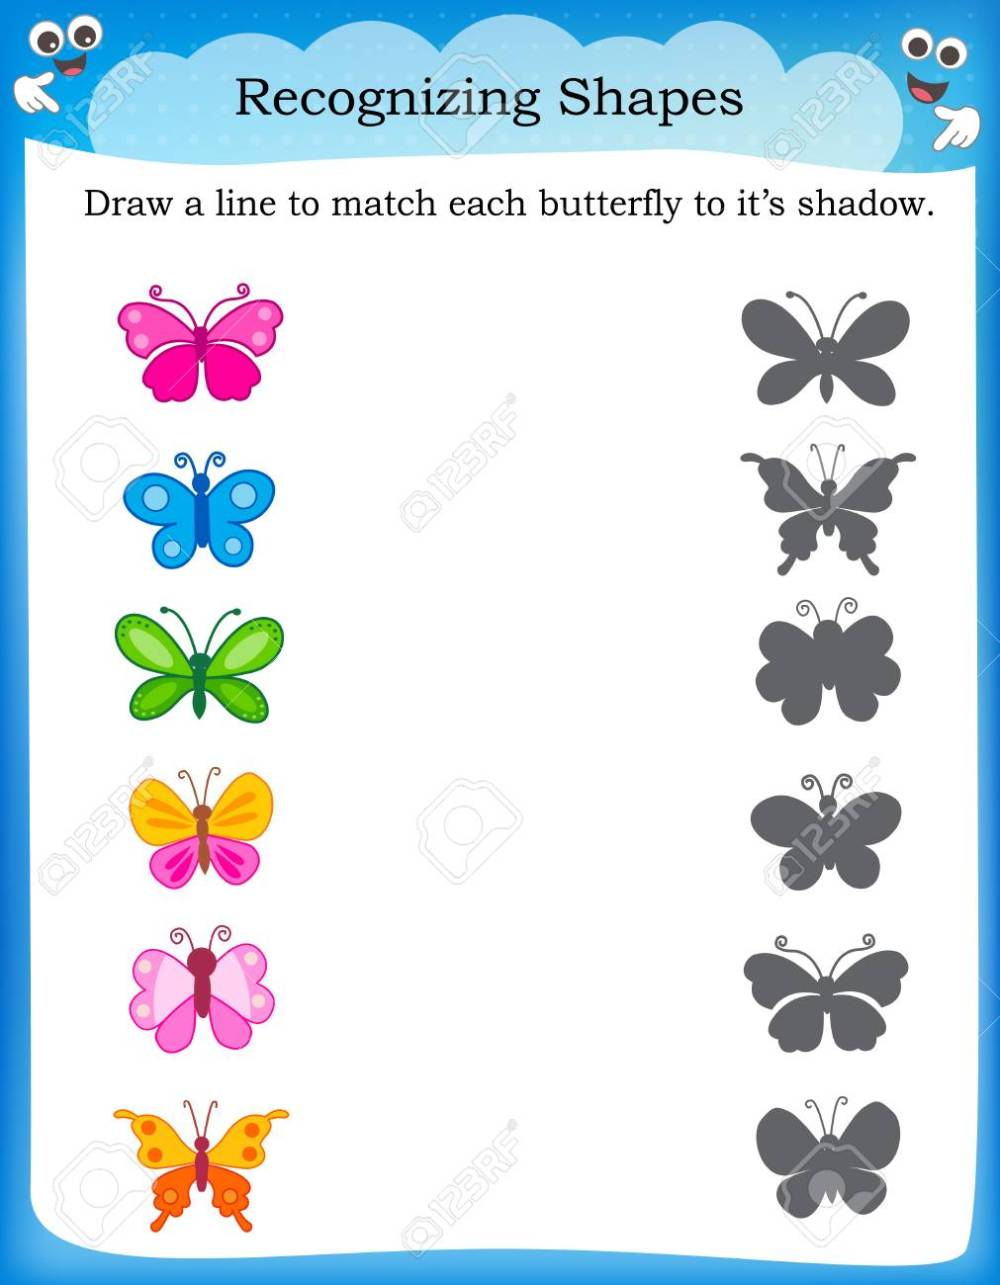 medium resolution of Worksheet Recognizing Shapes   Draw A Line To Match Butterflies.. Royalty  Free Cliparts